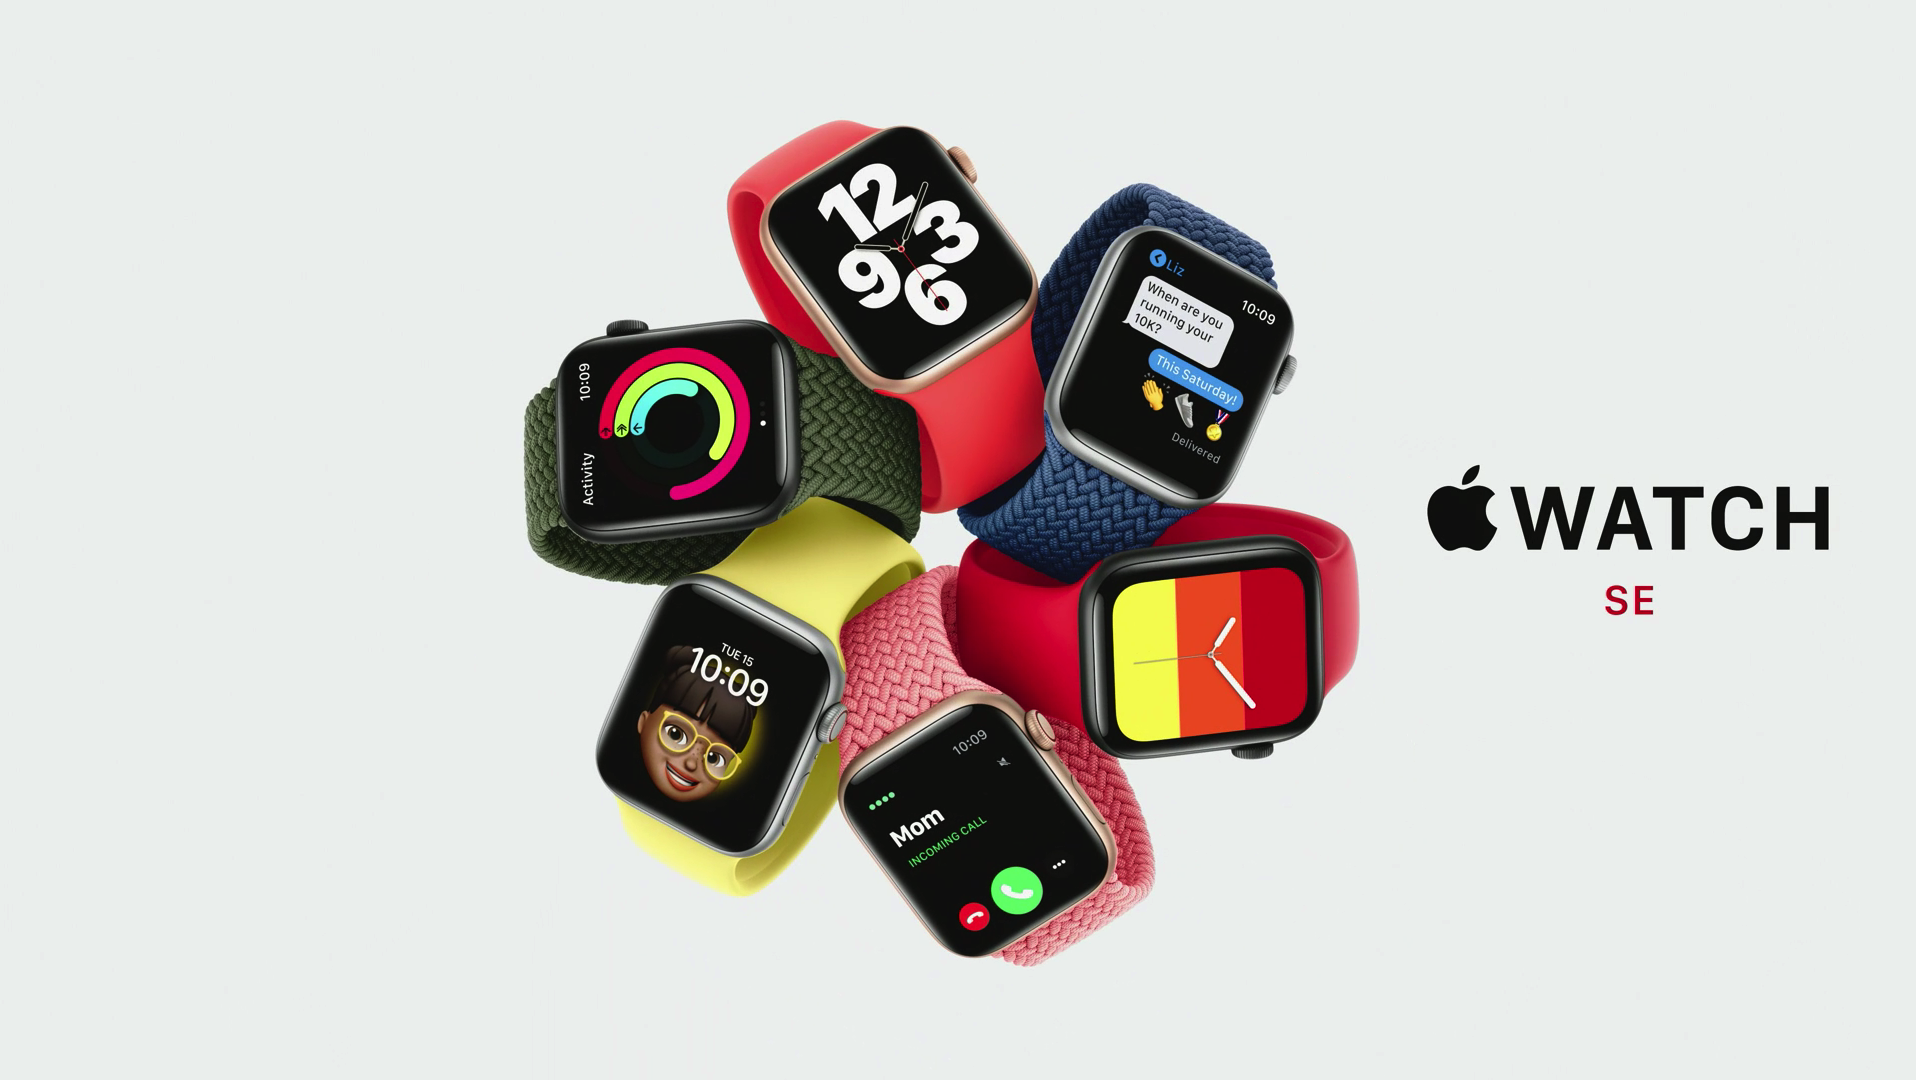 The Apple Watch SE will be available with a variety of accessories